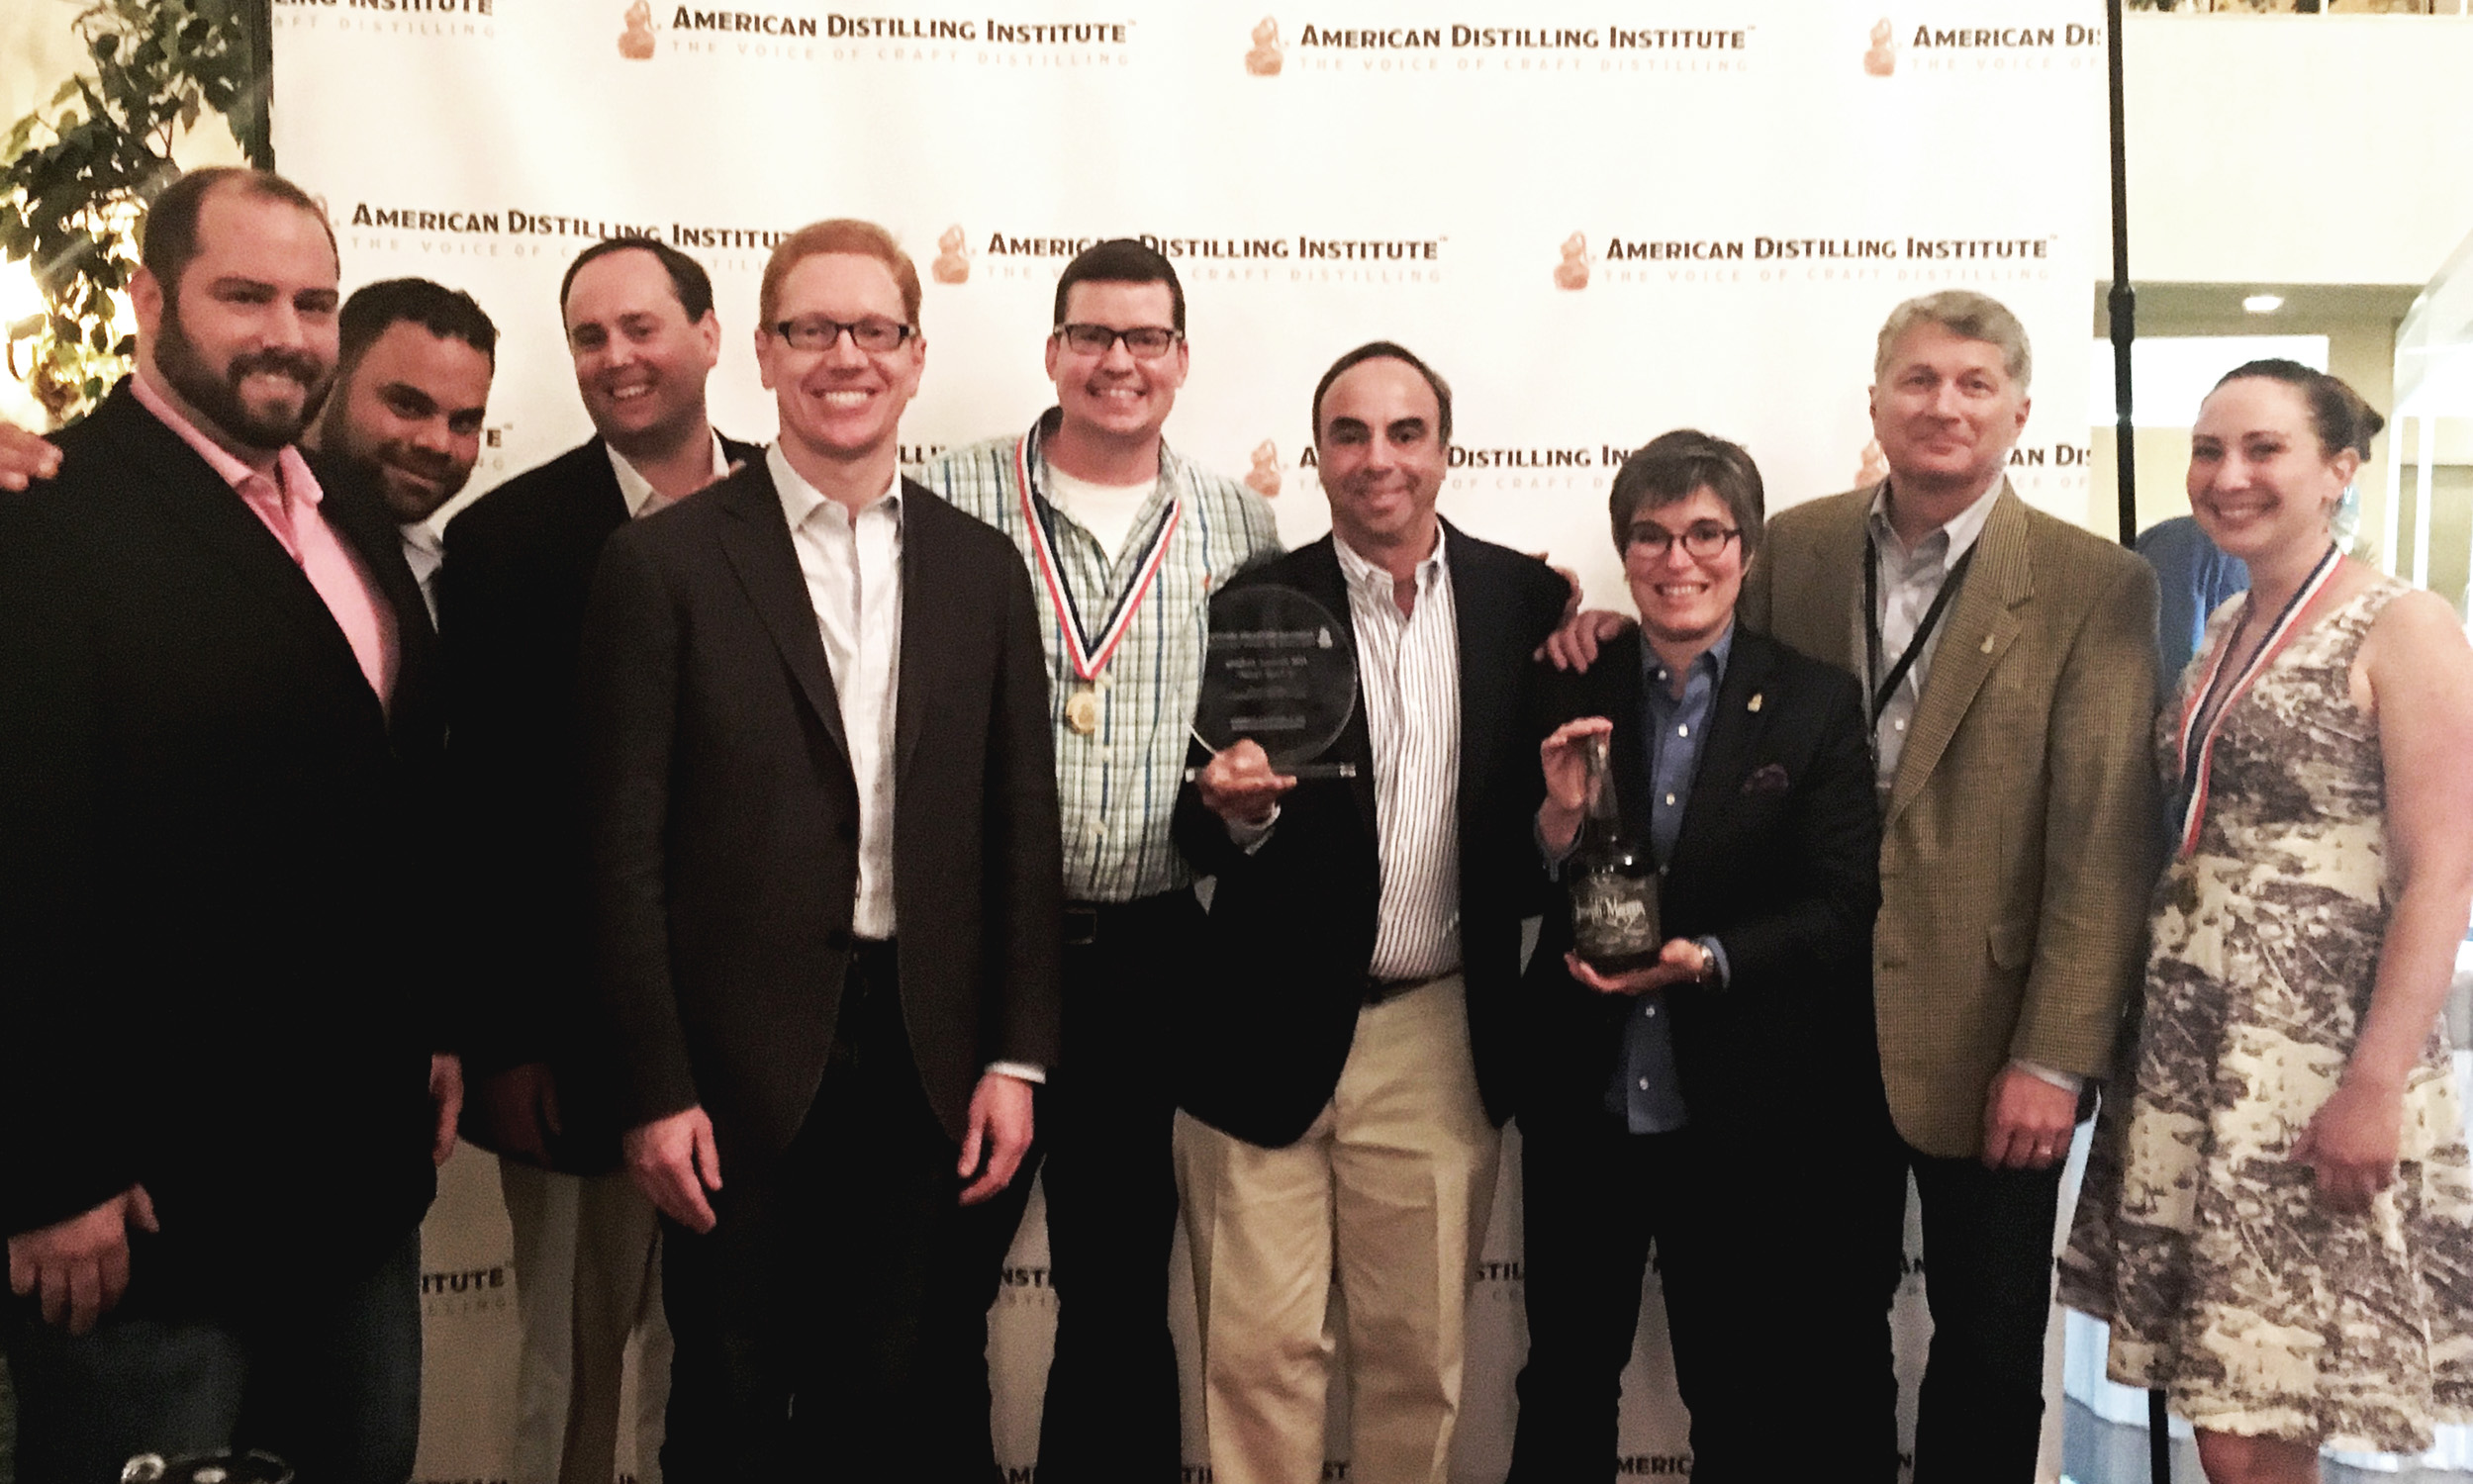 2 D.C. distillers win awards at national competition